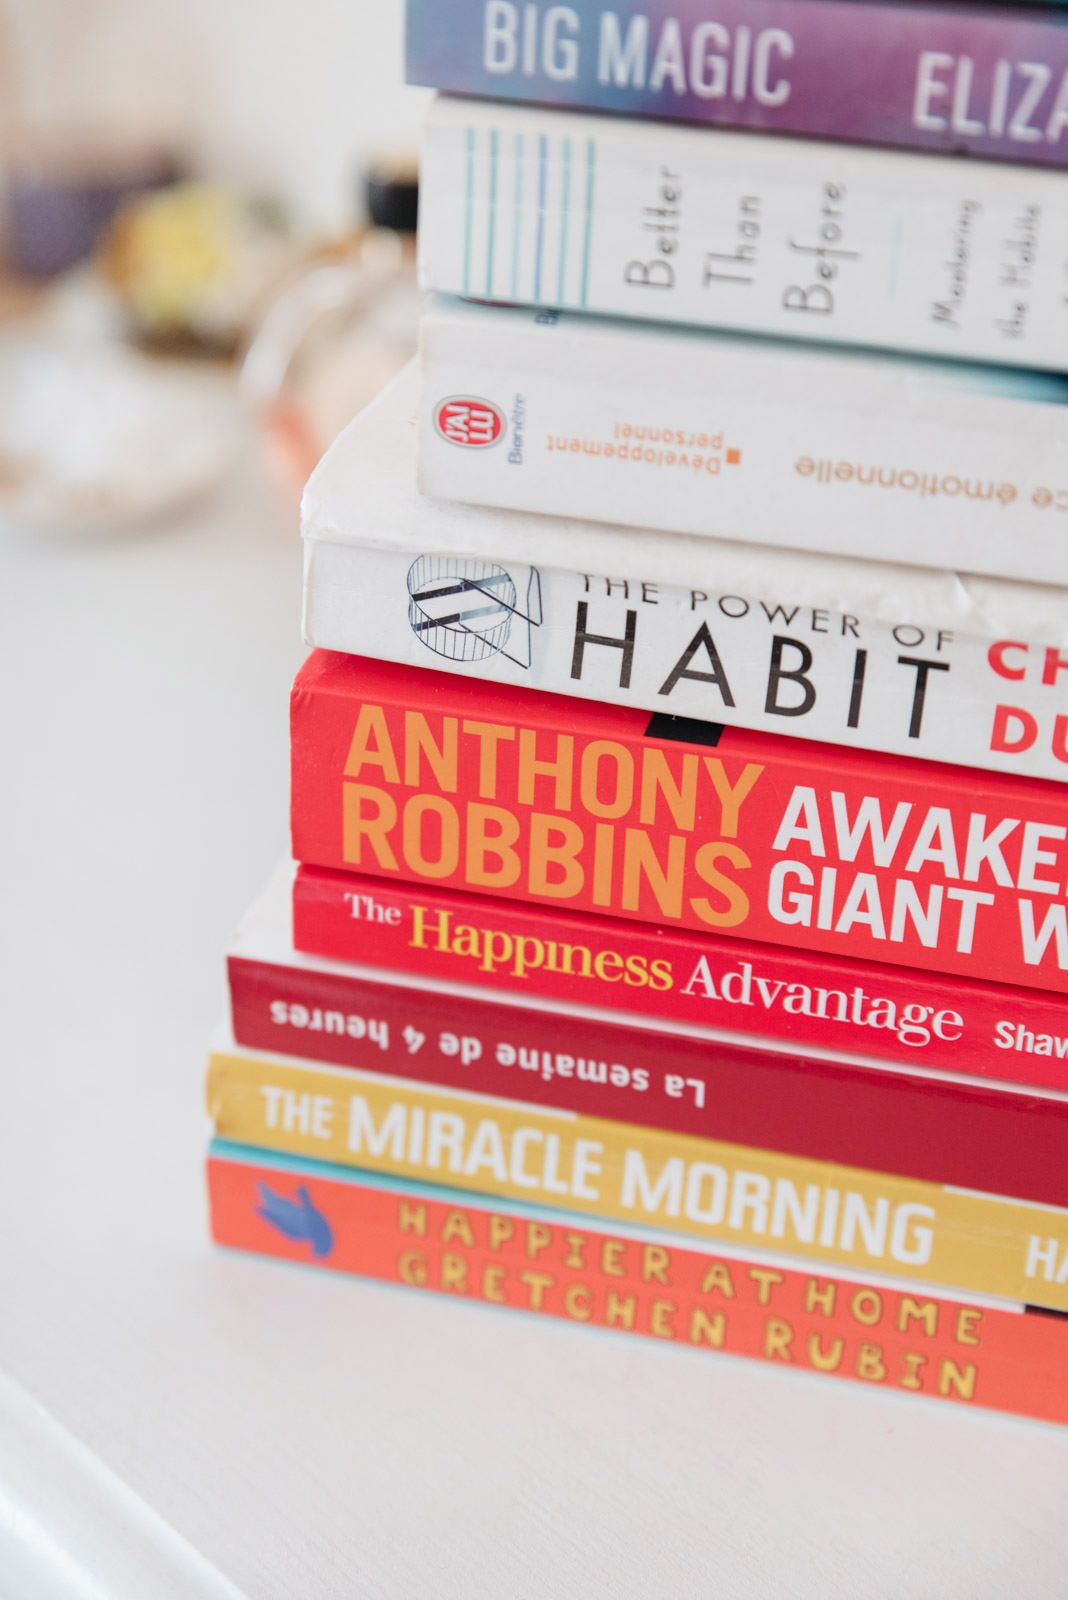 Blog-Mode-And-The-City-Lifestyle-Be-Inspired-11-livres-developpement-ersonnel-3